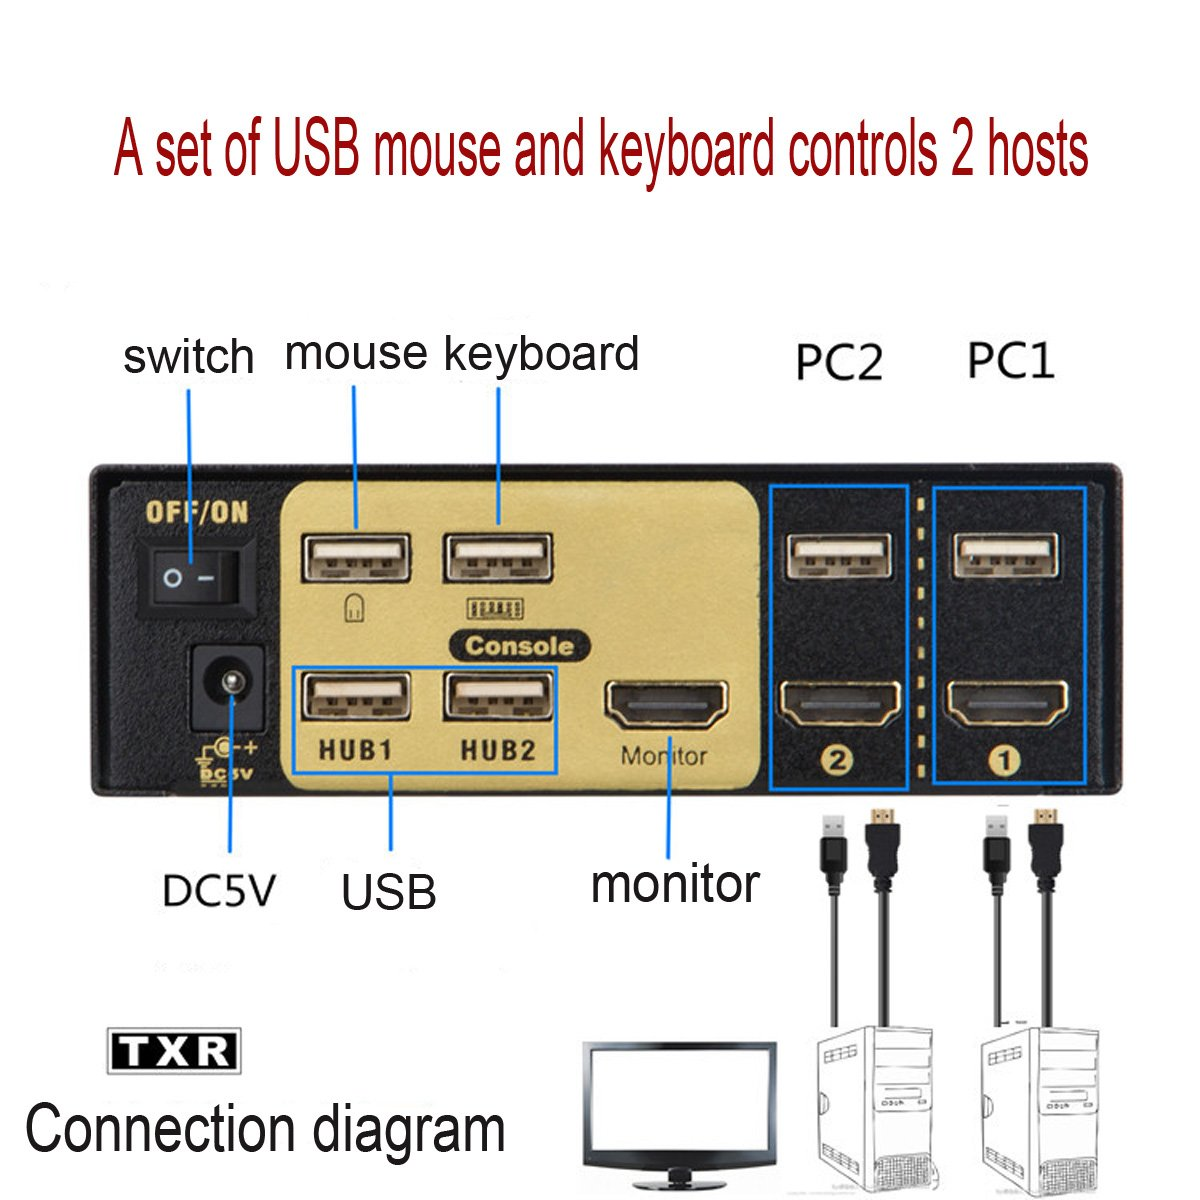 Vakabox 2 Ports Usb 20 Hdmi Kvm Switch Keyboard Mouse Wiring Diagram Color Switcher With Ir Remote For Pc Windows Mac Computers Accessories